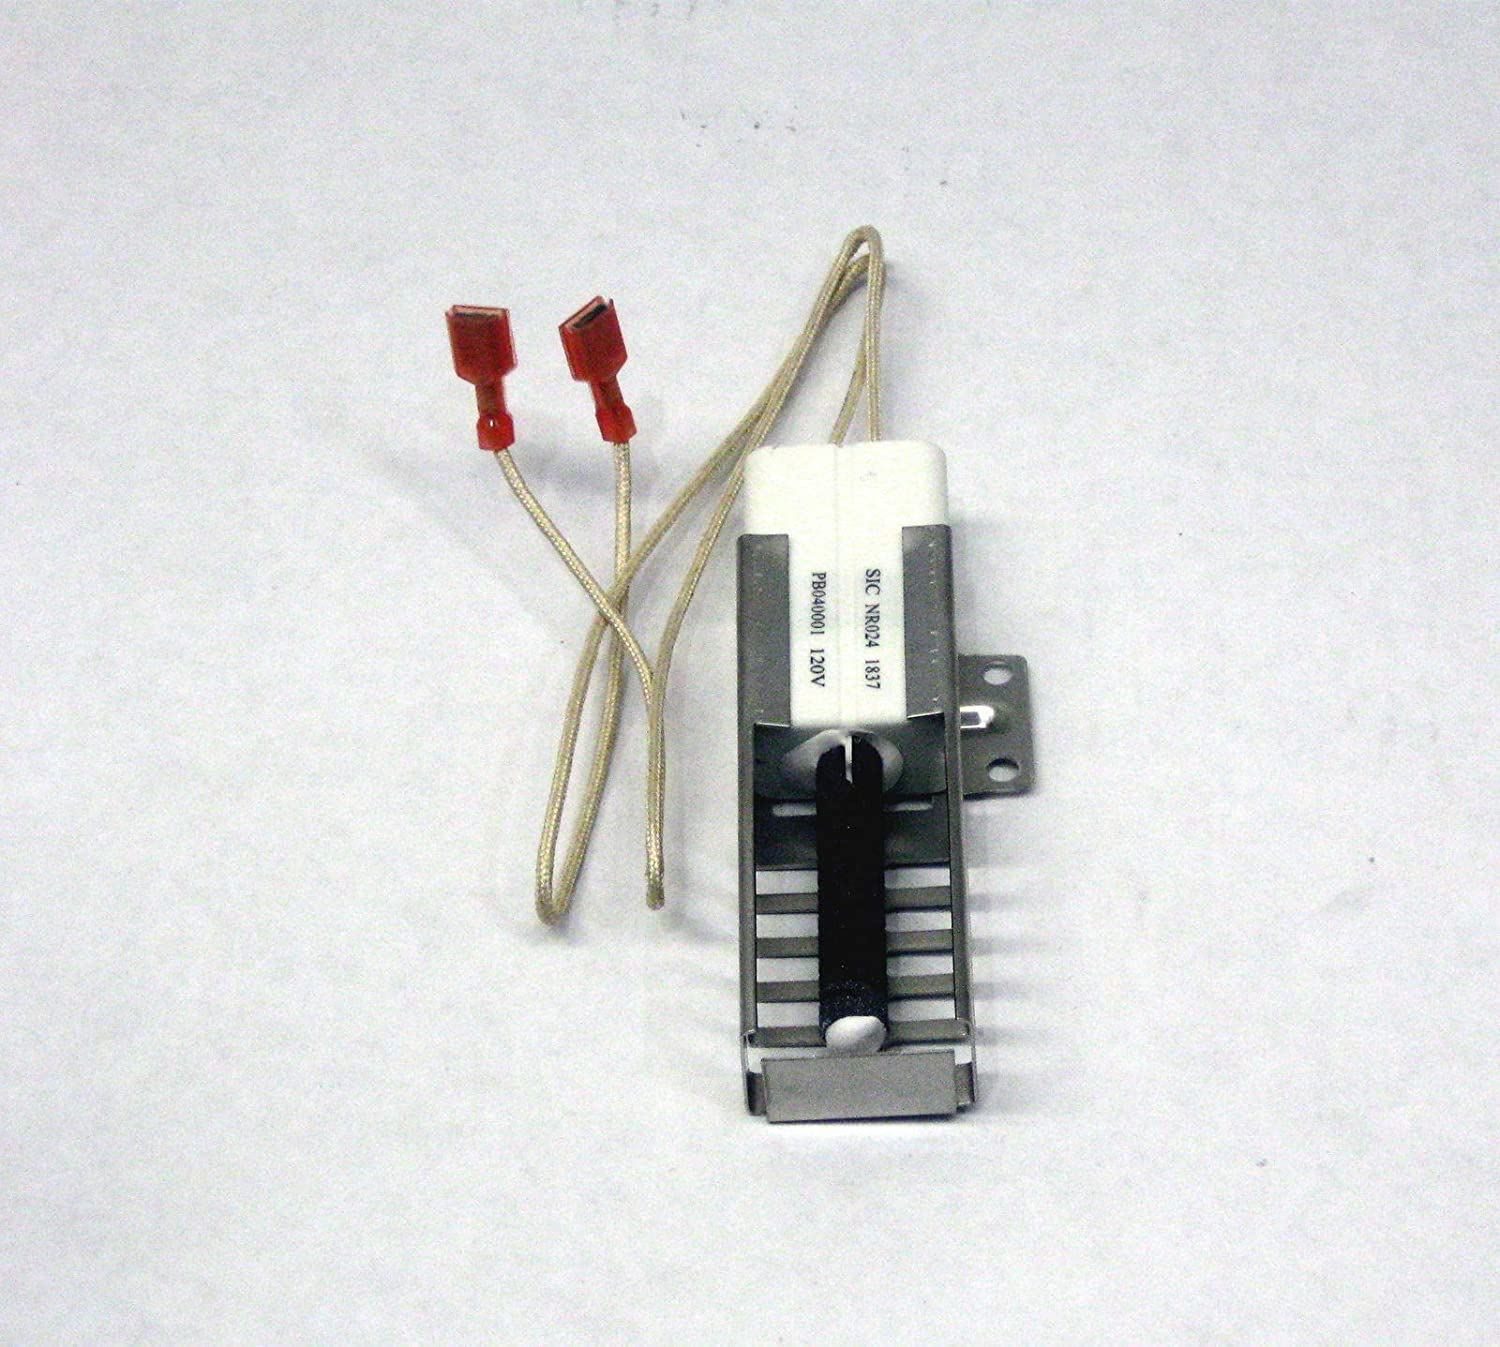 Gas Range Oven Ignitor for Viking Range replacement for PB040001 + FREE E-BOOK (FREEZING)